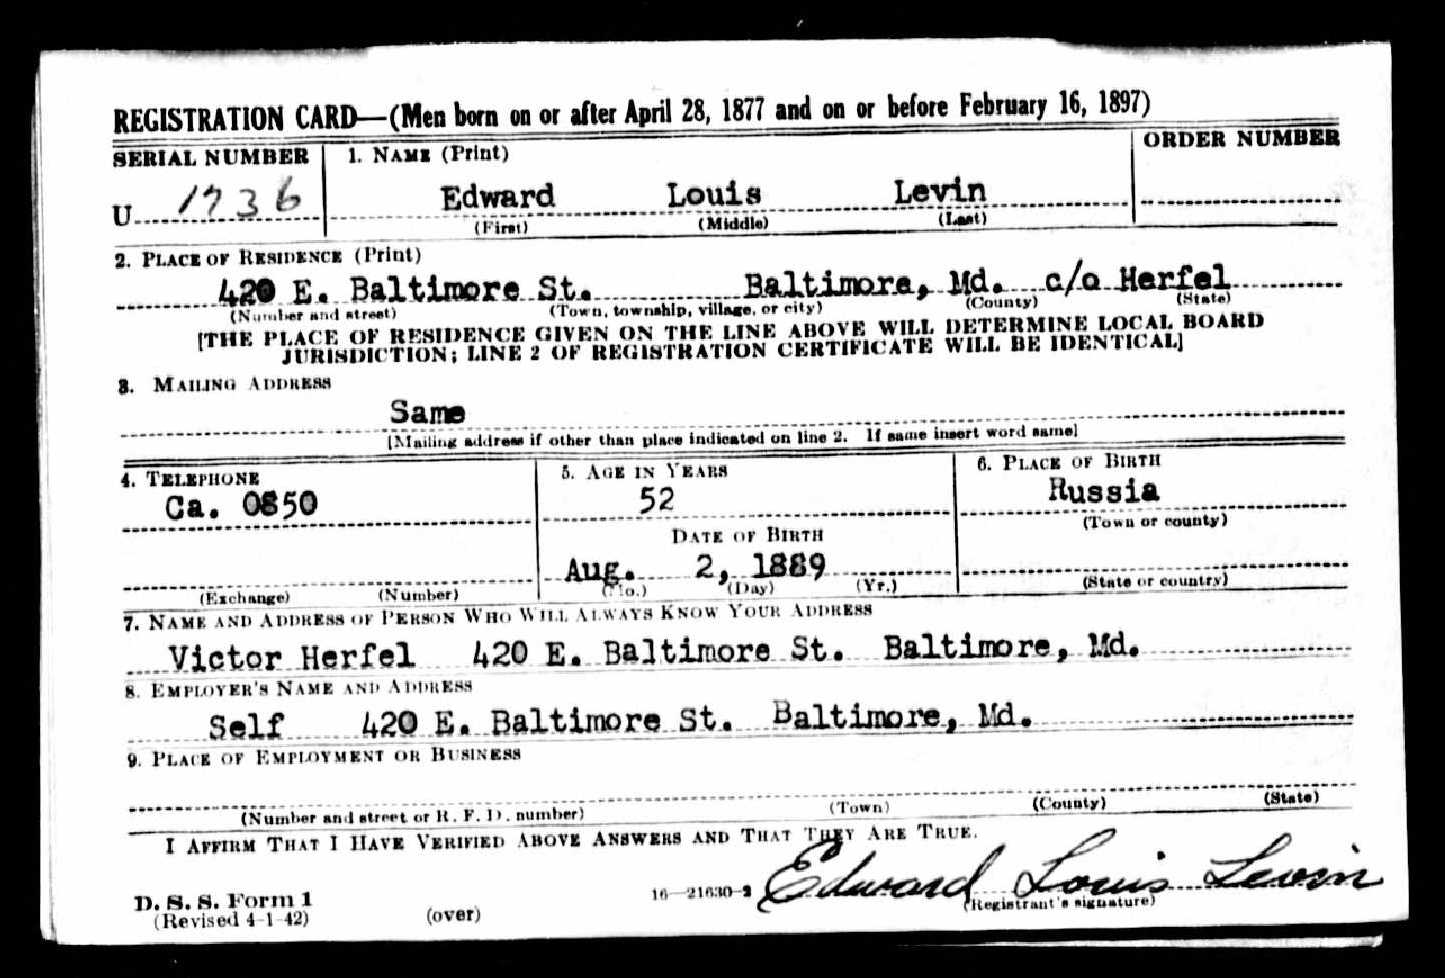 Eddie Levin's WWII Draft Card Showing his Studio Address at 420 E. Baltimore Street. *Note: Victor Herfel operated a photography studio at the same address.